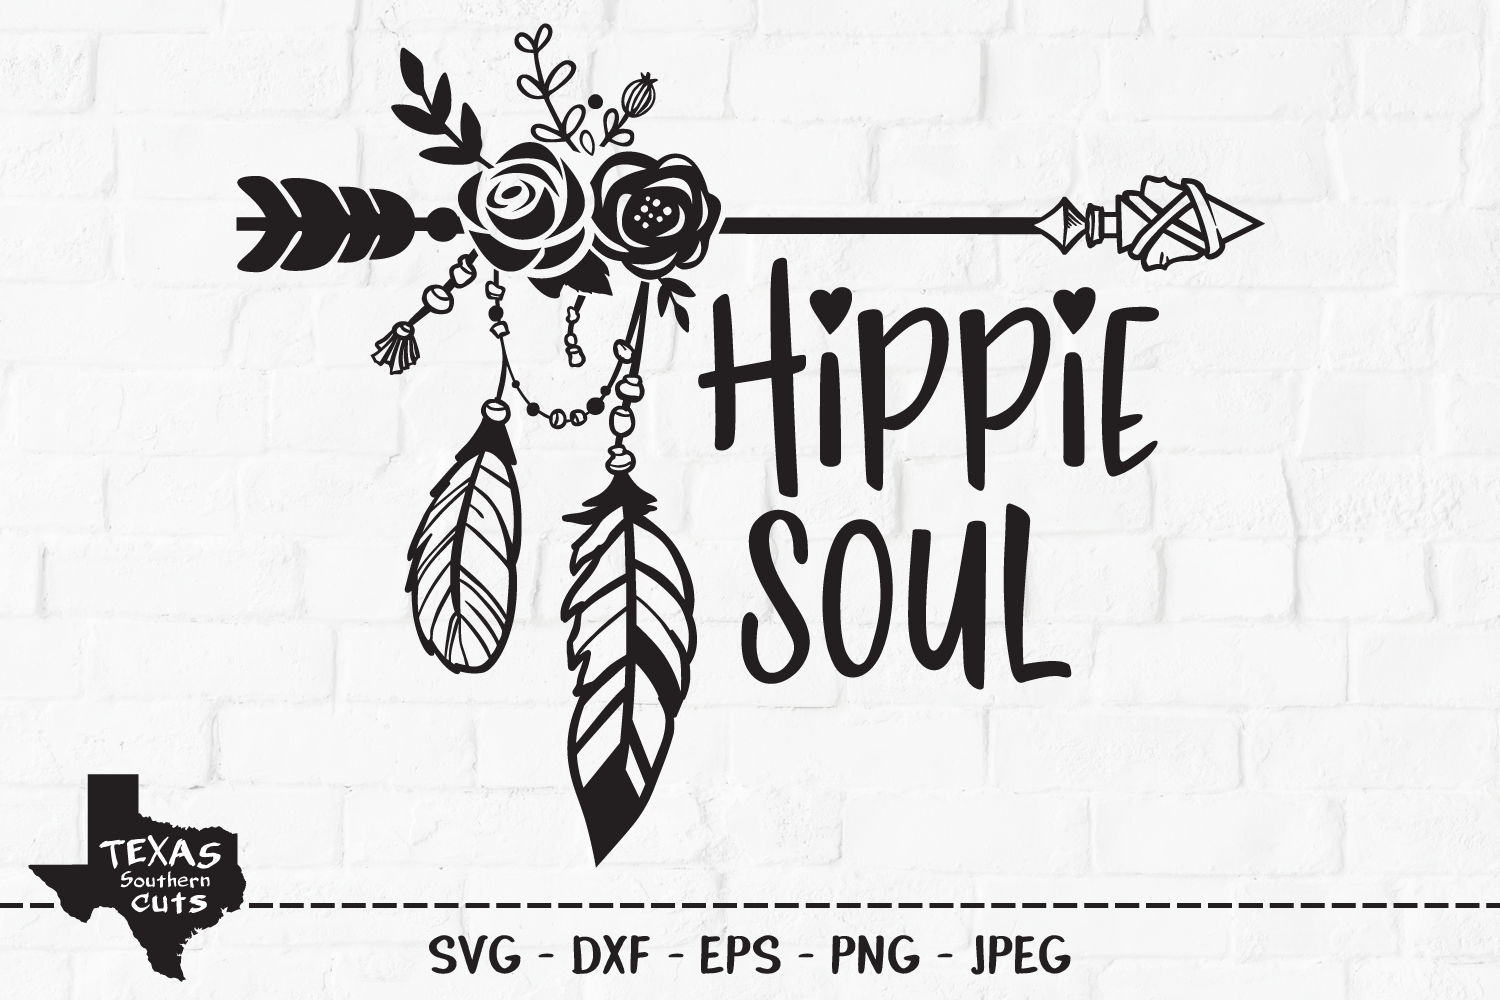 Download Free Hippie Soul Outdoor Shirt Design Graphic By Texassoutherncuts for Cricut Explore, Silhouette and other cutting machines.